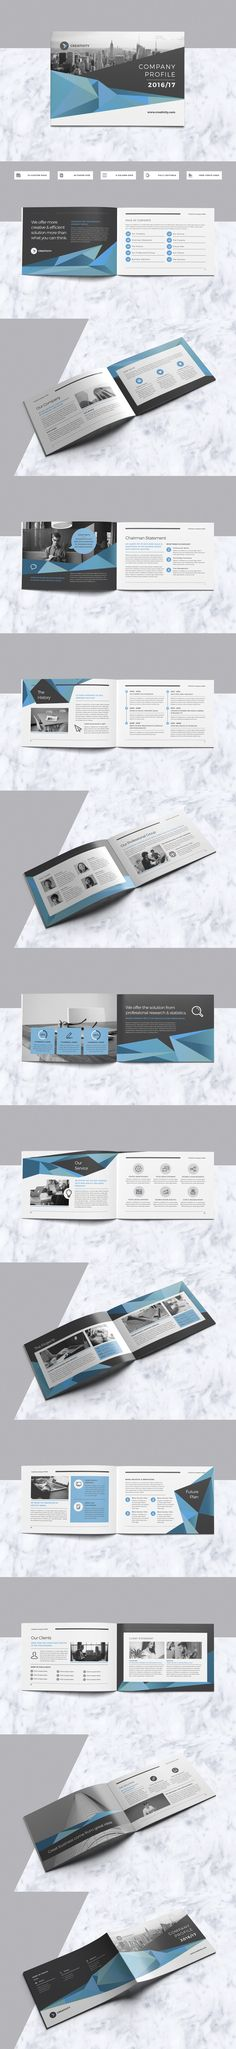 A5 Company Profile Brochure Design Template InDesign INDD